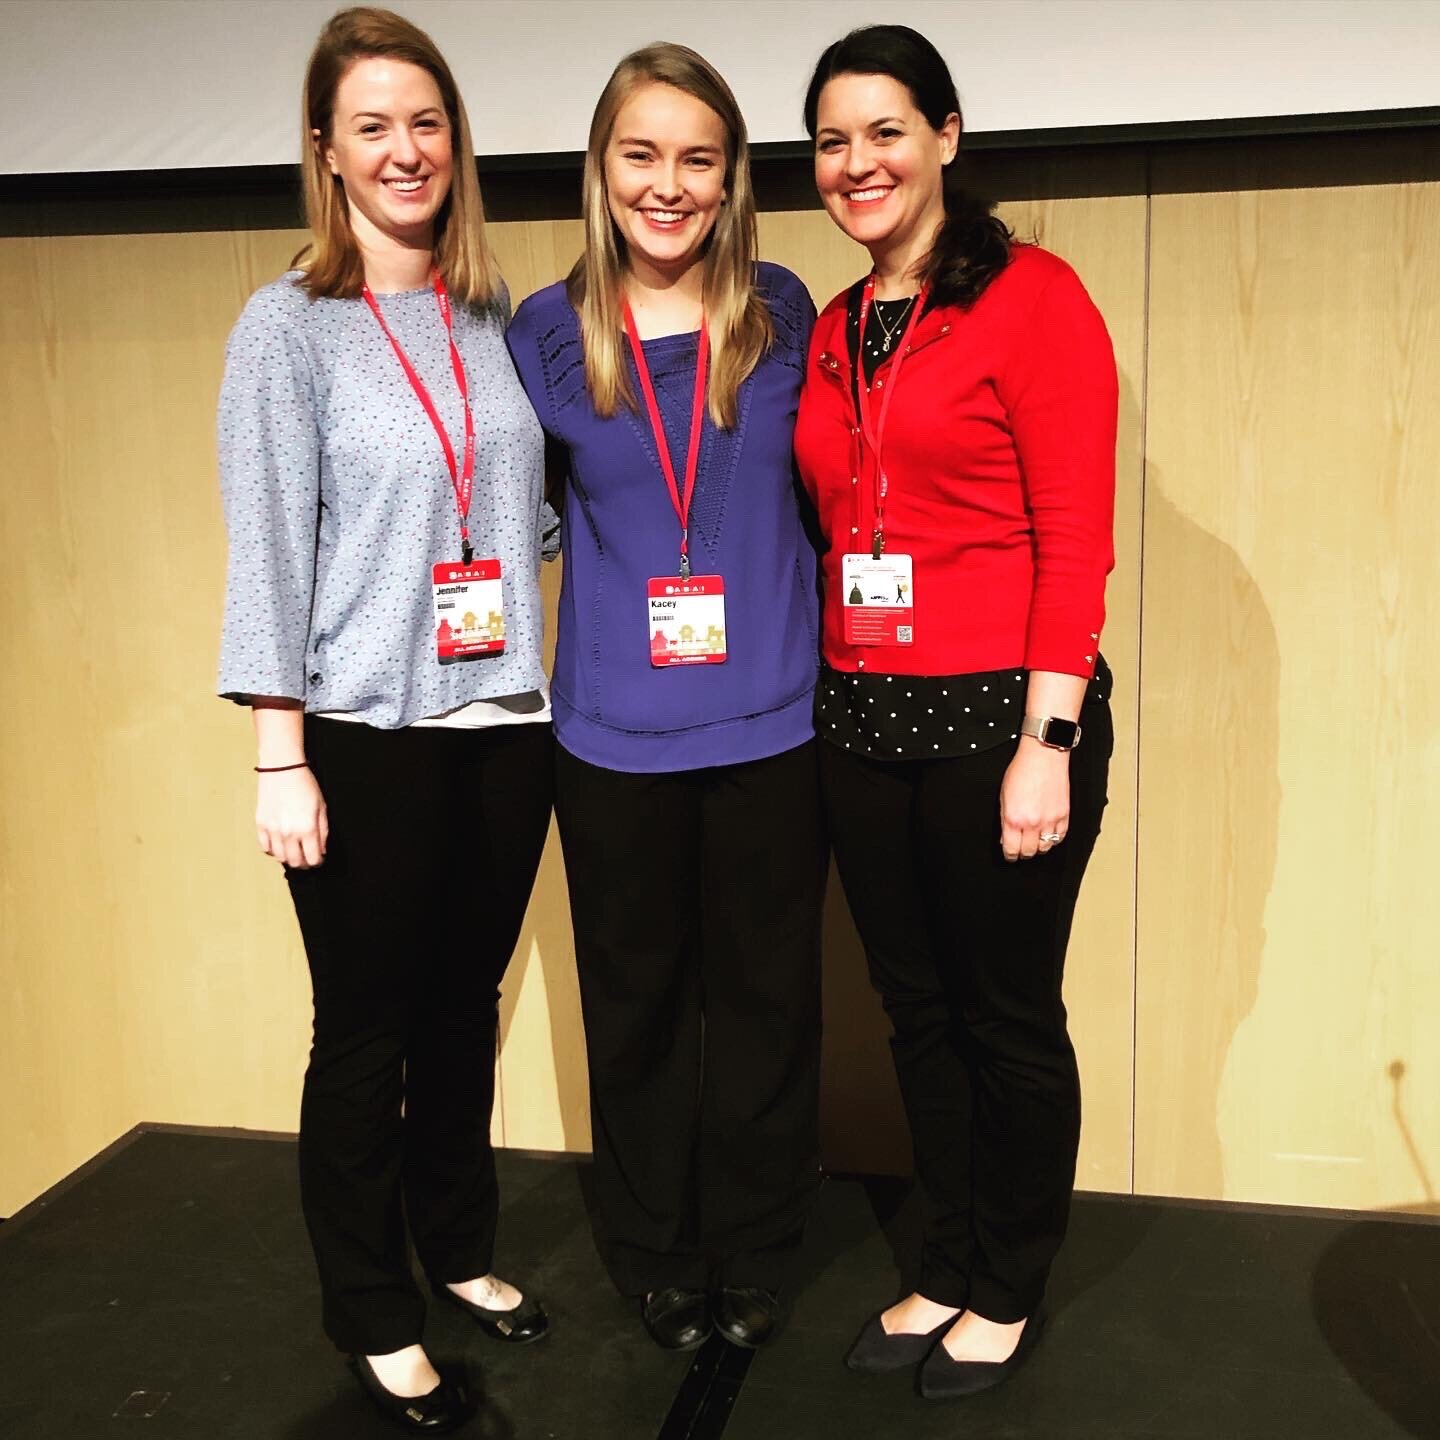 Jenni Owsiany, Kacey Finch, and Dr. Kestner (Left to right) presented a symposium on translational research on choice.